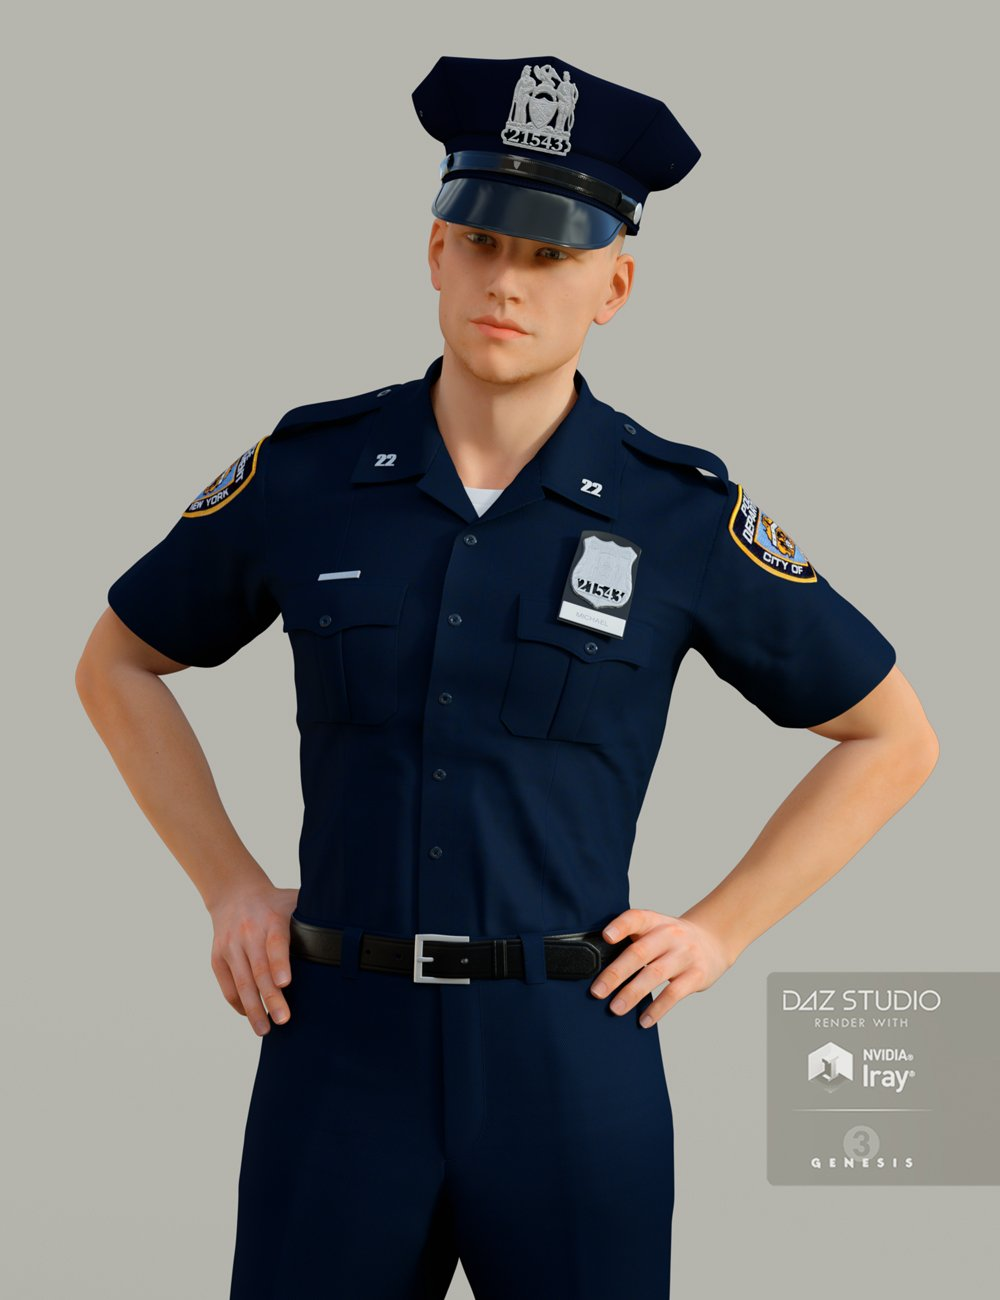 H&C Police Uniform for Genesis 3 Male(s) by: IH Kang, 3D Models by Daz 3D